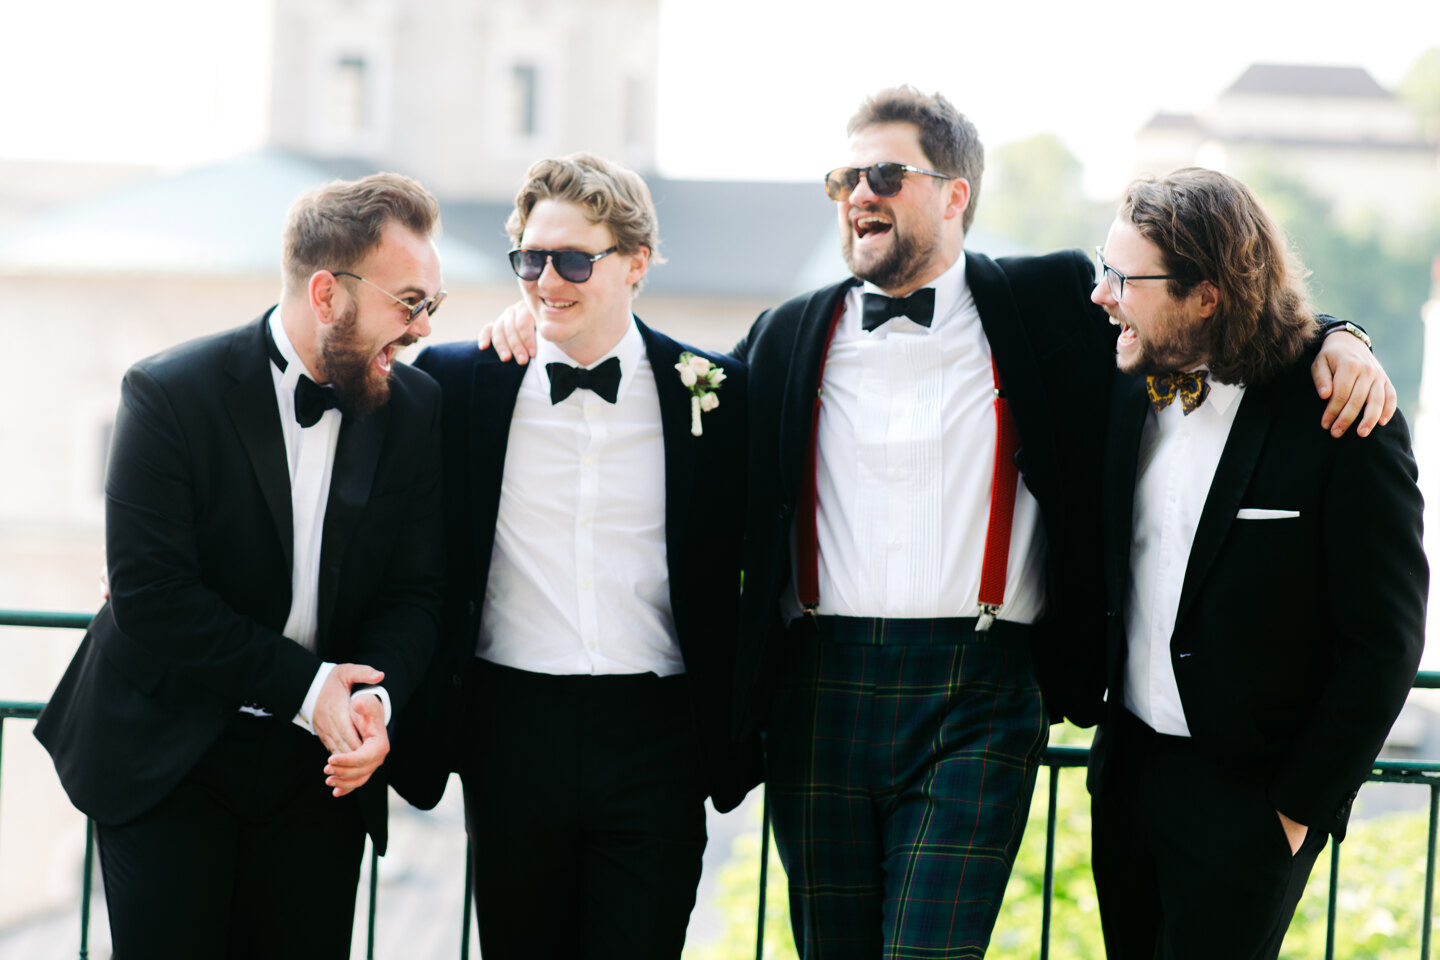 Wedding Photographer in Naples: Groom and his mates have fun chatting on the balcony